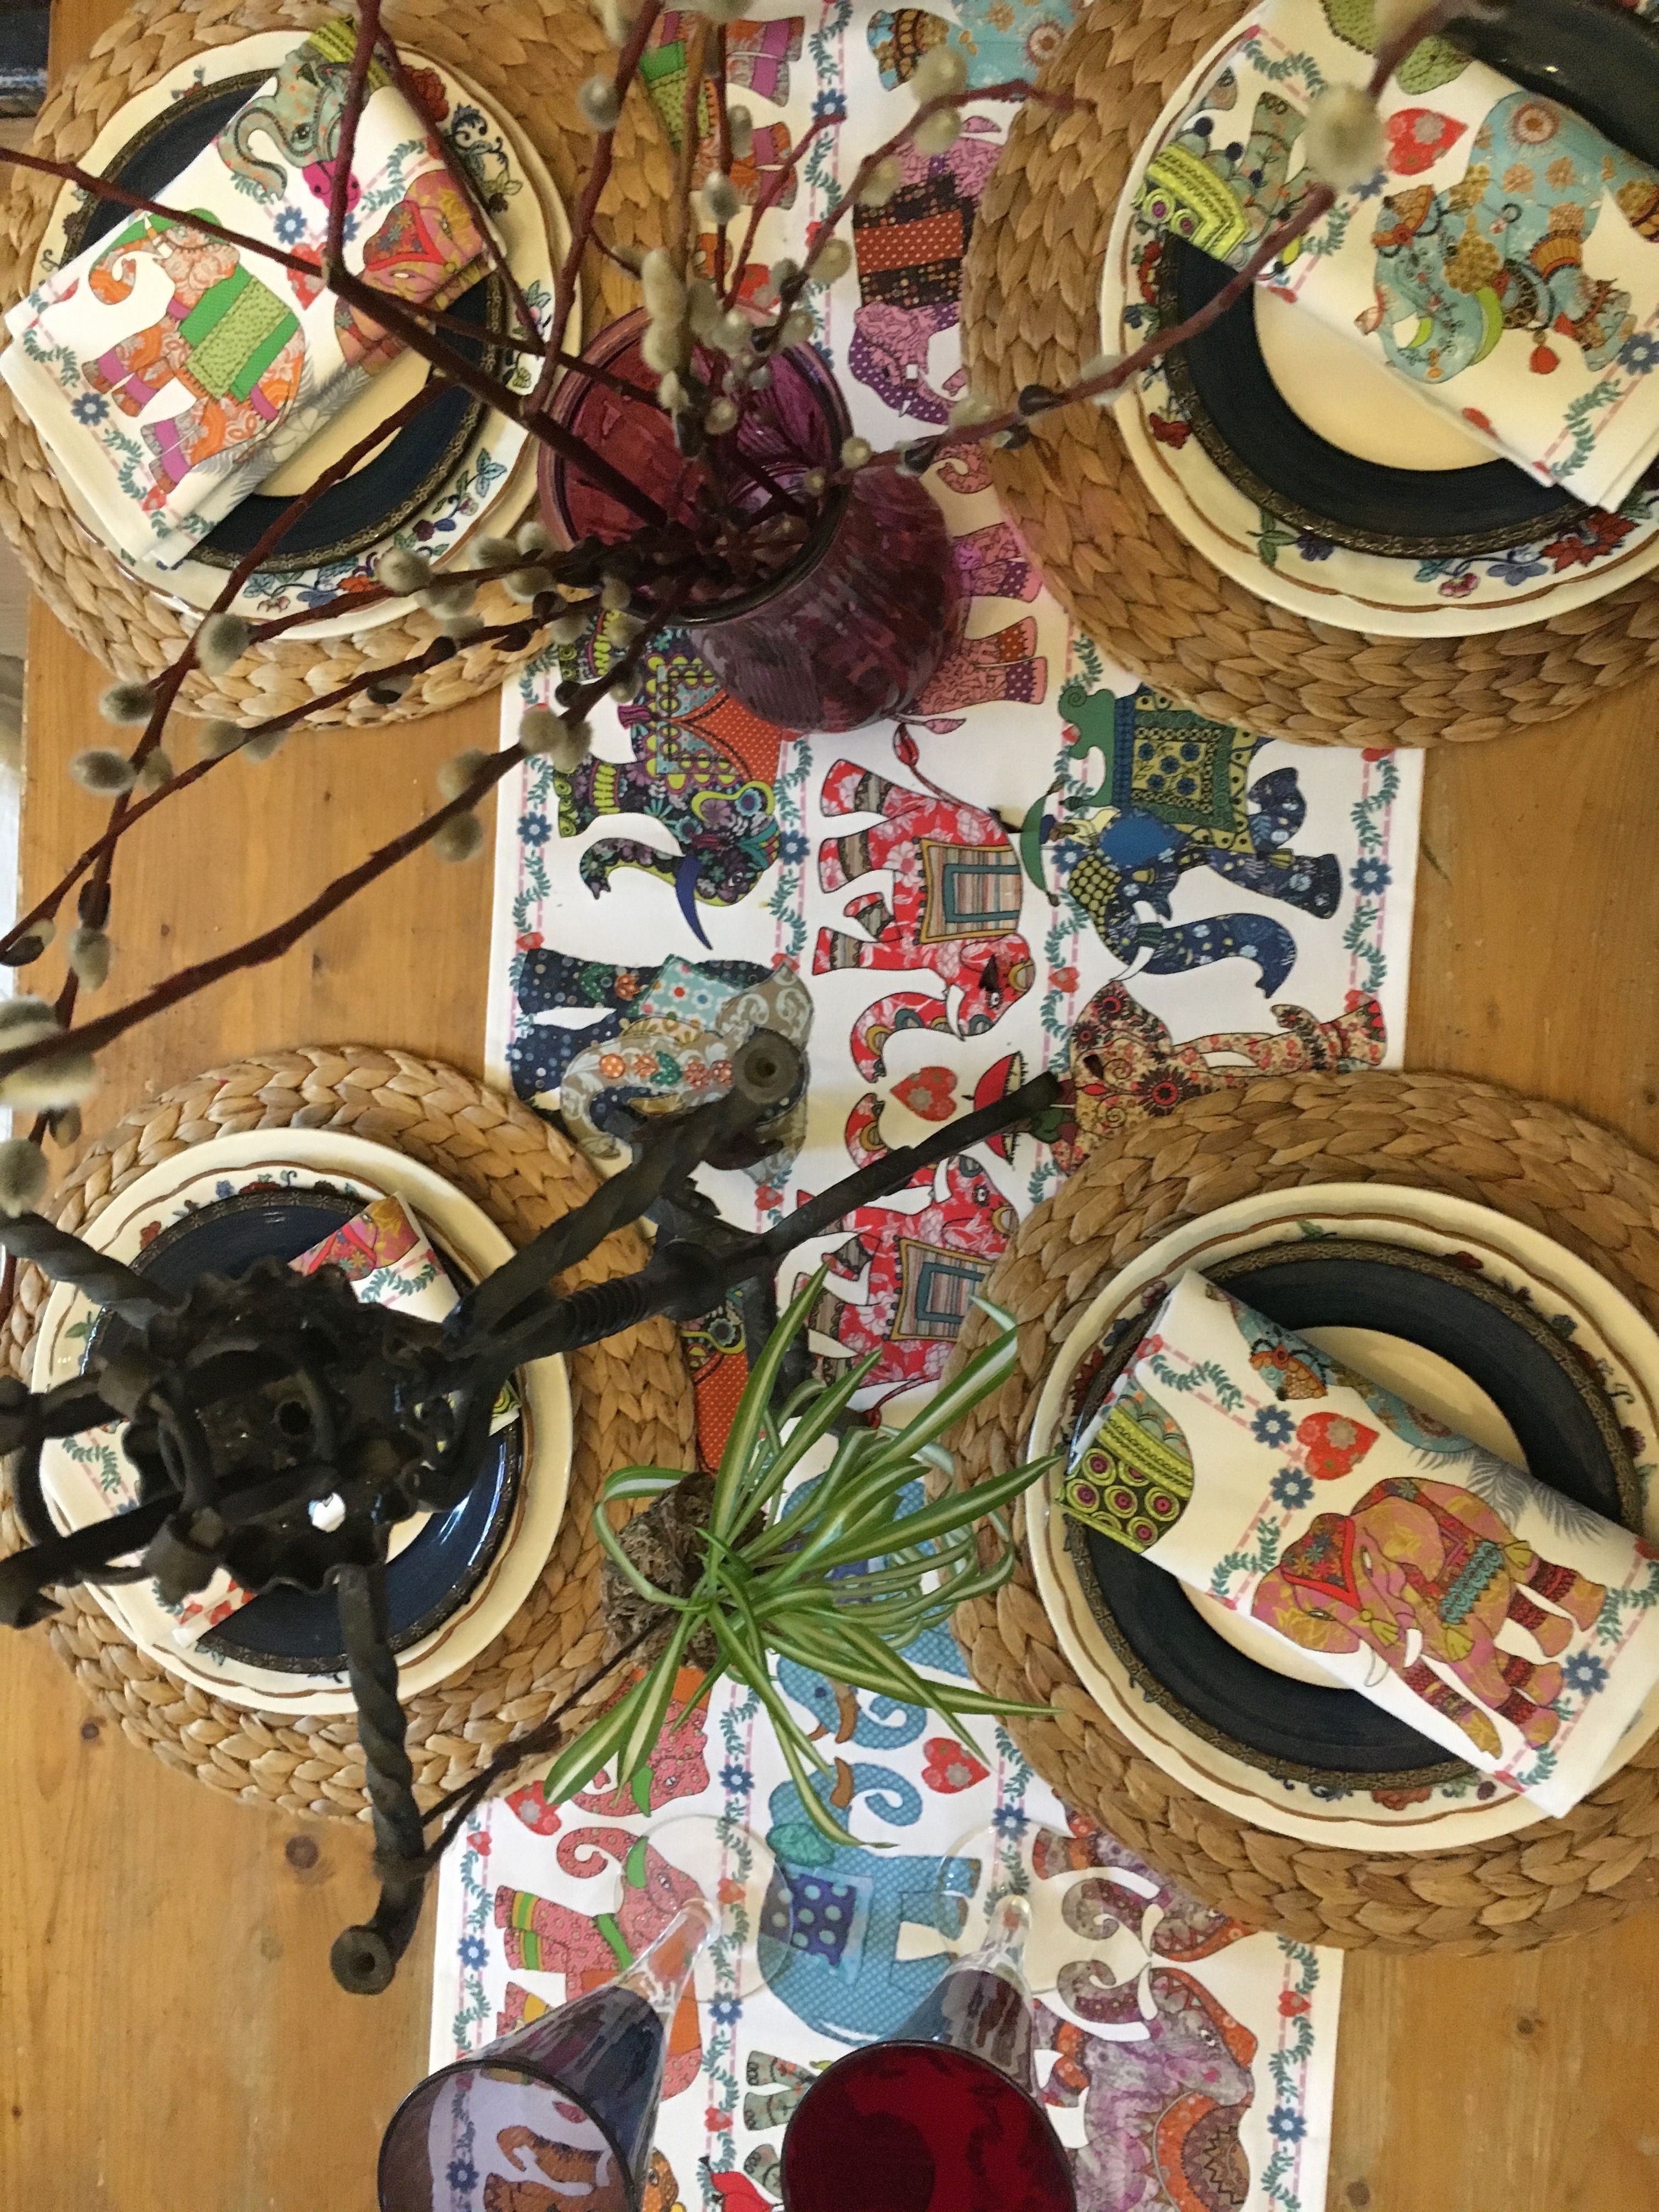 Elephant Table Runner For Your Bohemian Home Gift Or Keep It Is A Great Way To Make Tables Look Fa Elephant Parade Bohemian Elephant Elephant Table